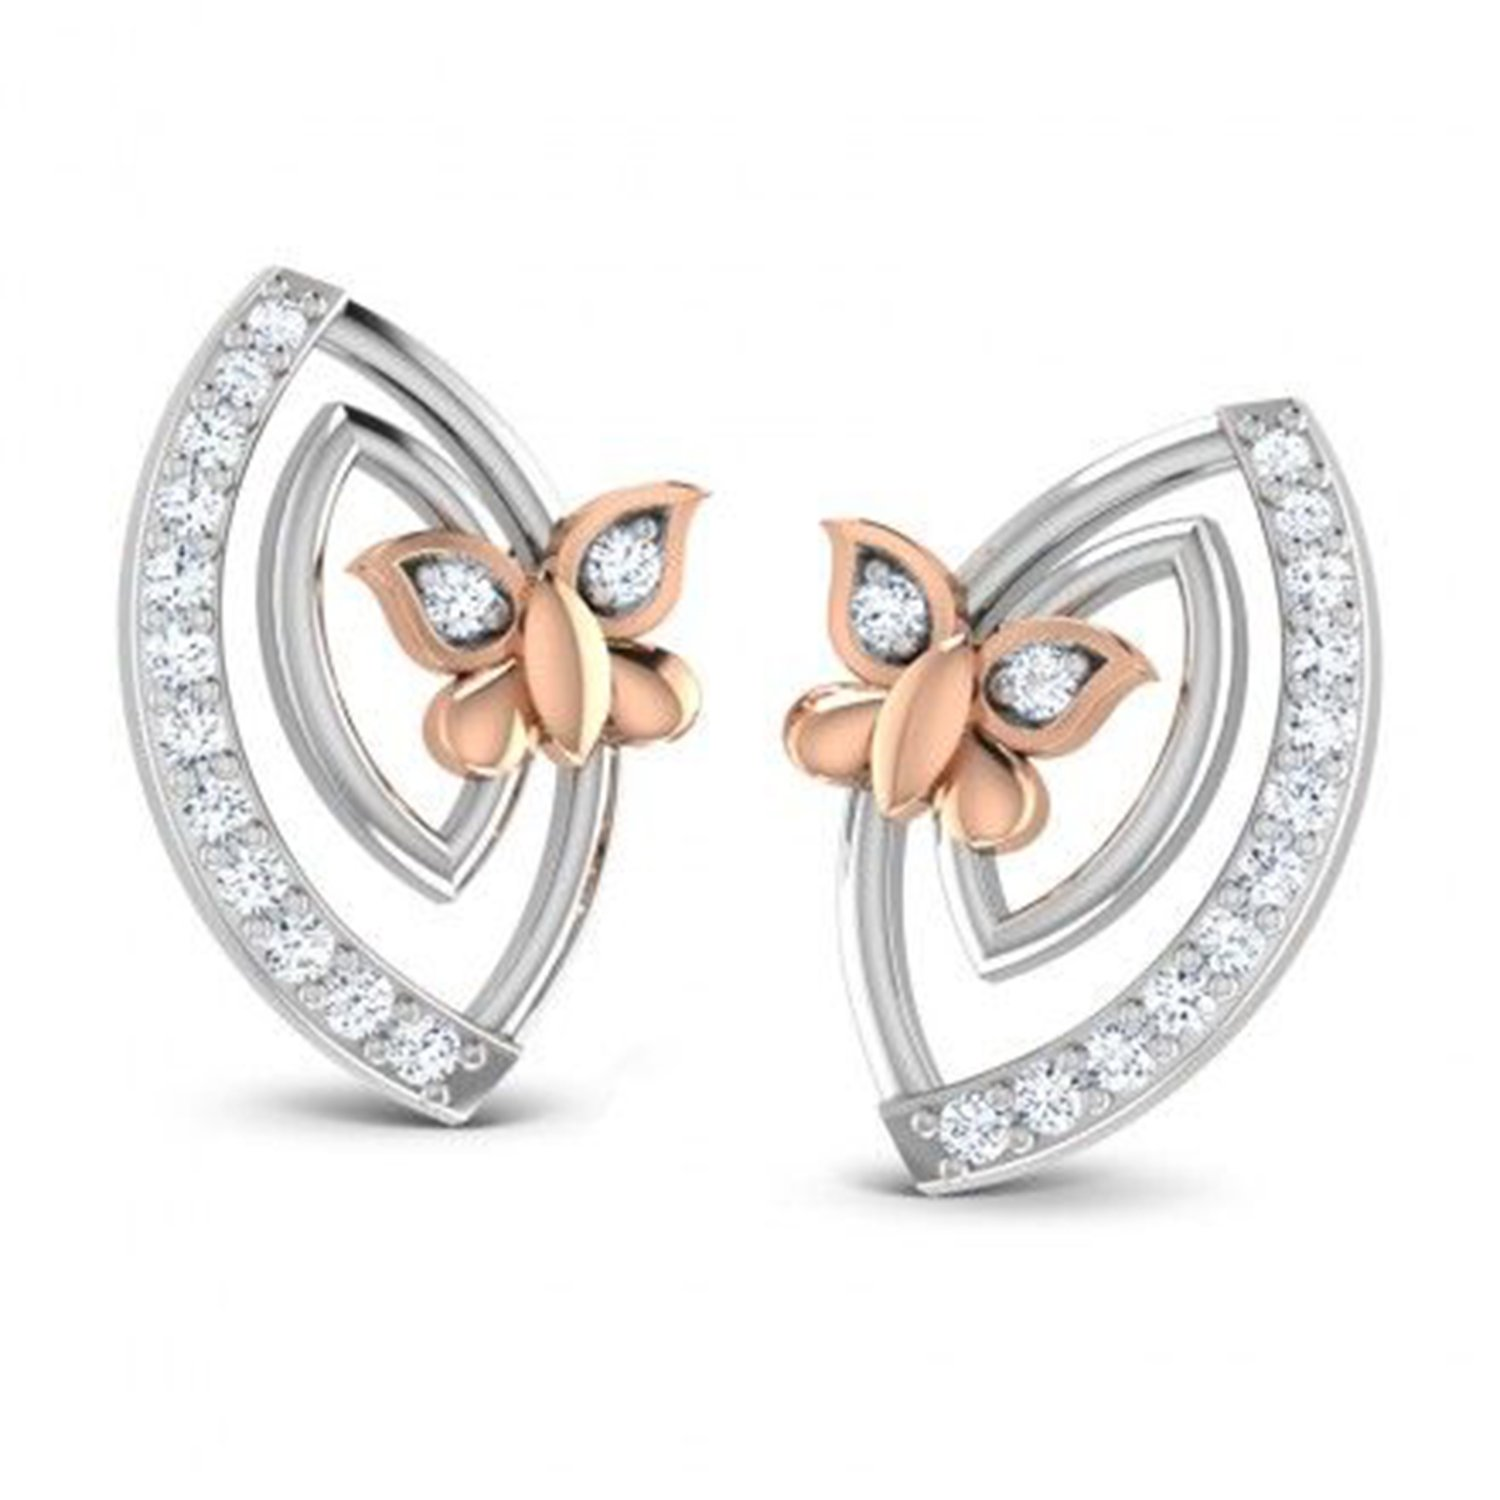 Simulated Diamond Studded 14K White Gold Plated Screwback Stud Earrings For Women Girls Jewelry